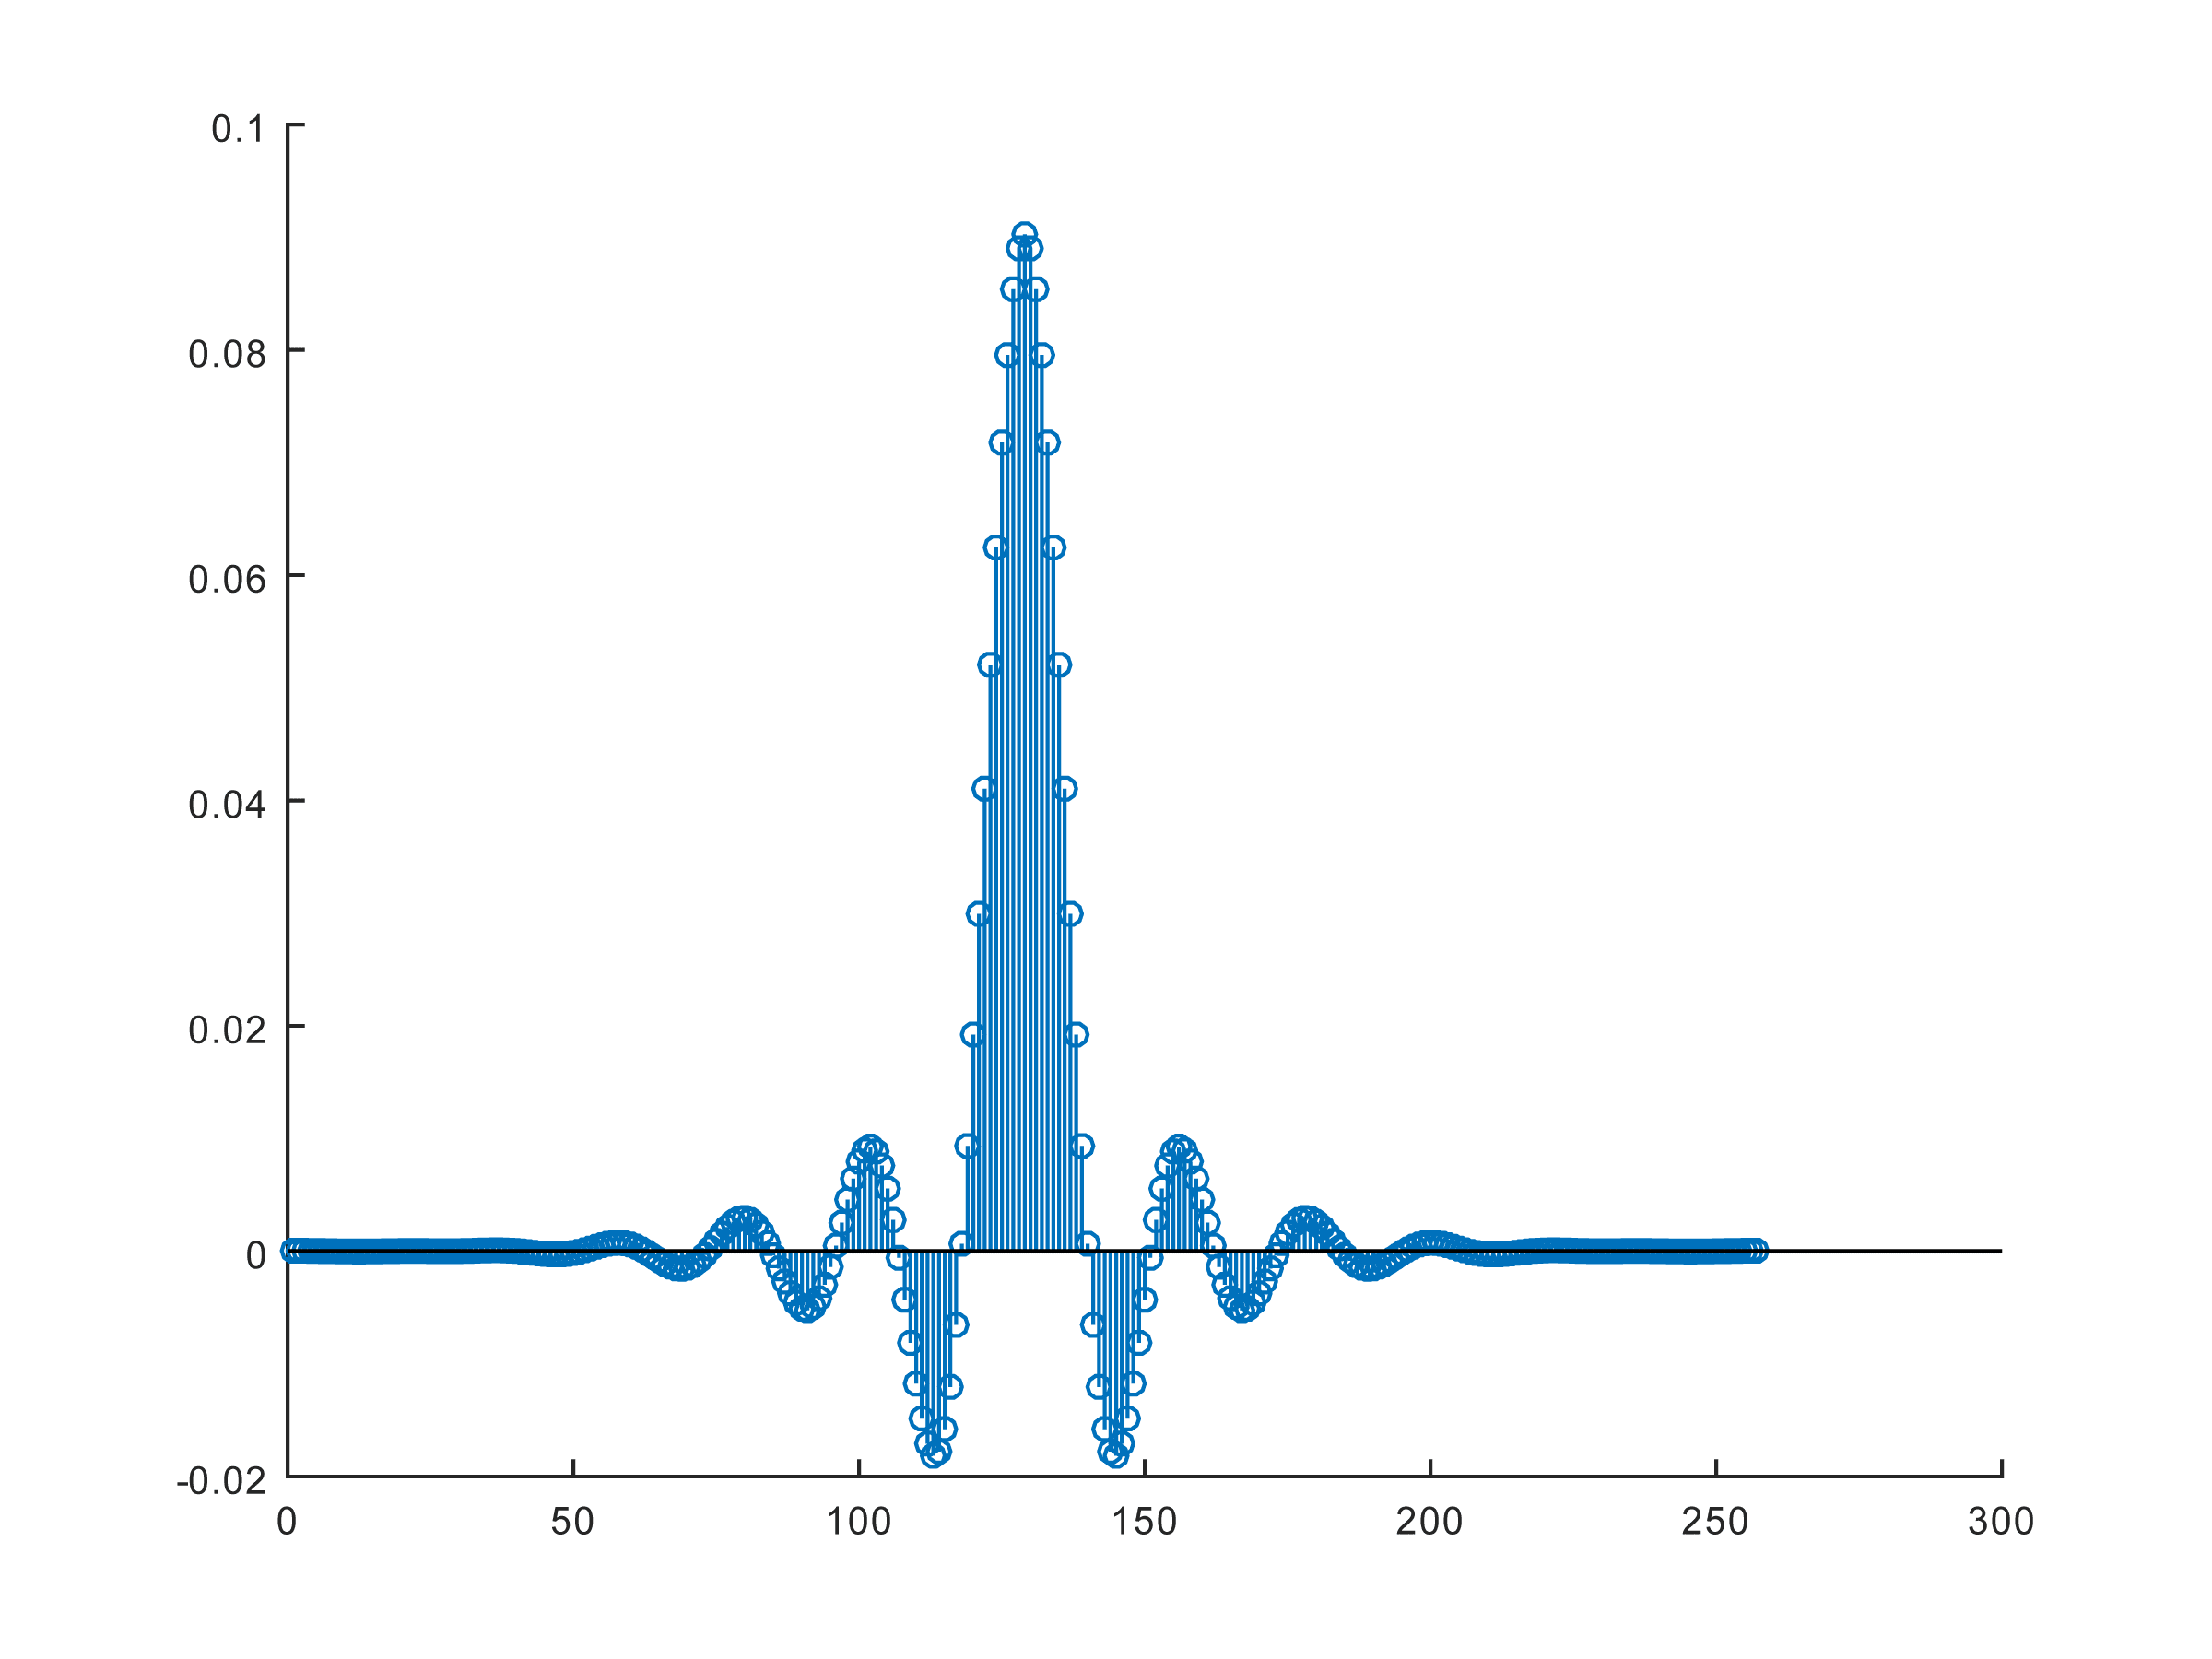 FIR filter with many coefficients introduces a significant delay into the signal processing path